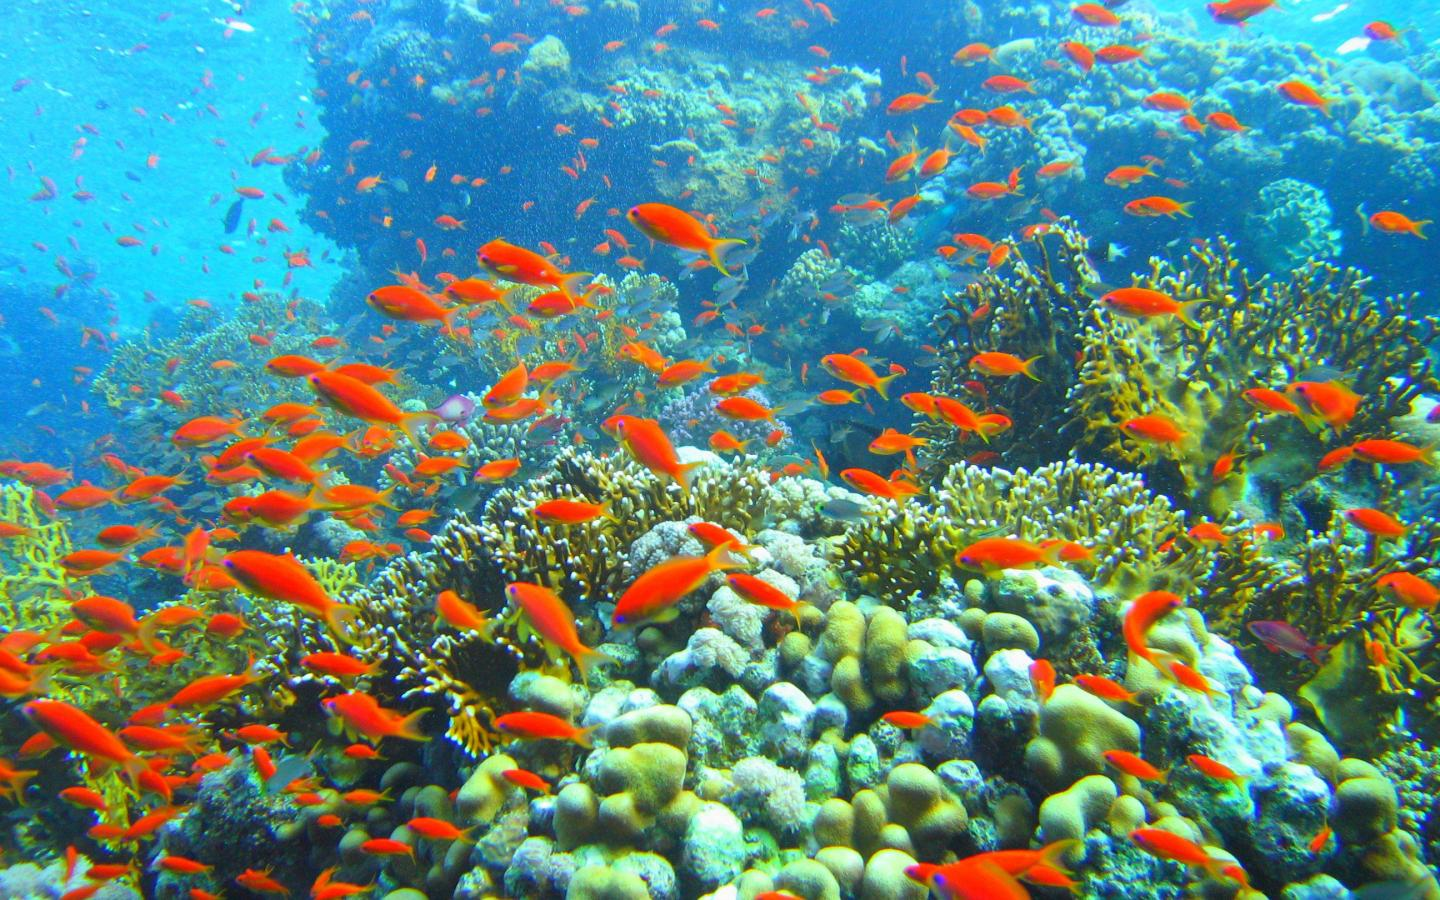 reef and fish   95851   High Quality and Resolution Wallpapers 1440x900